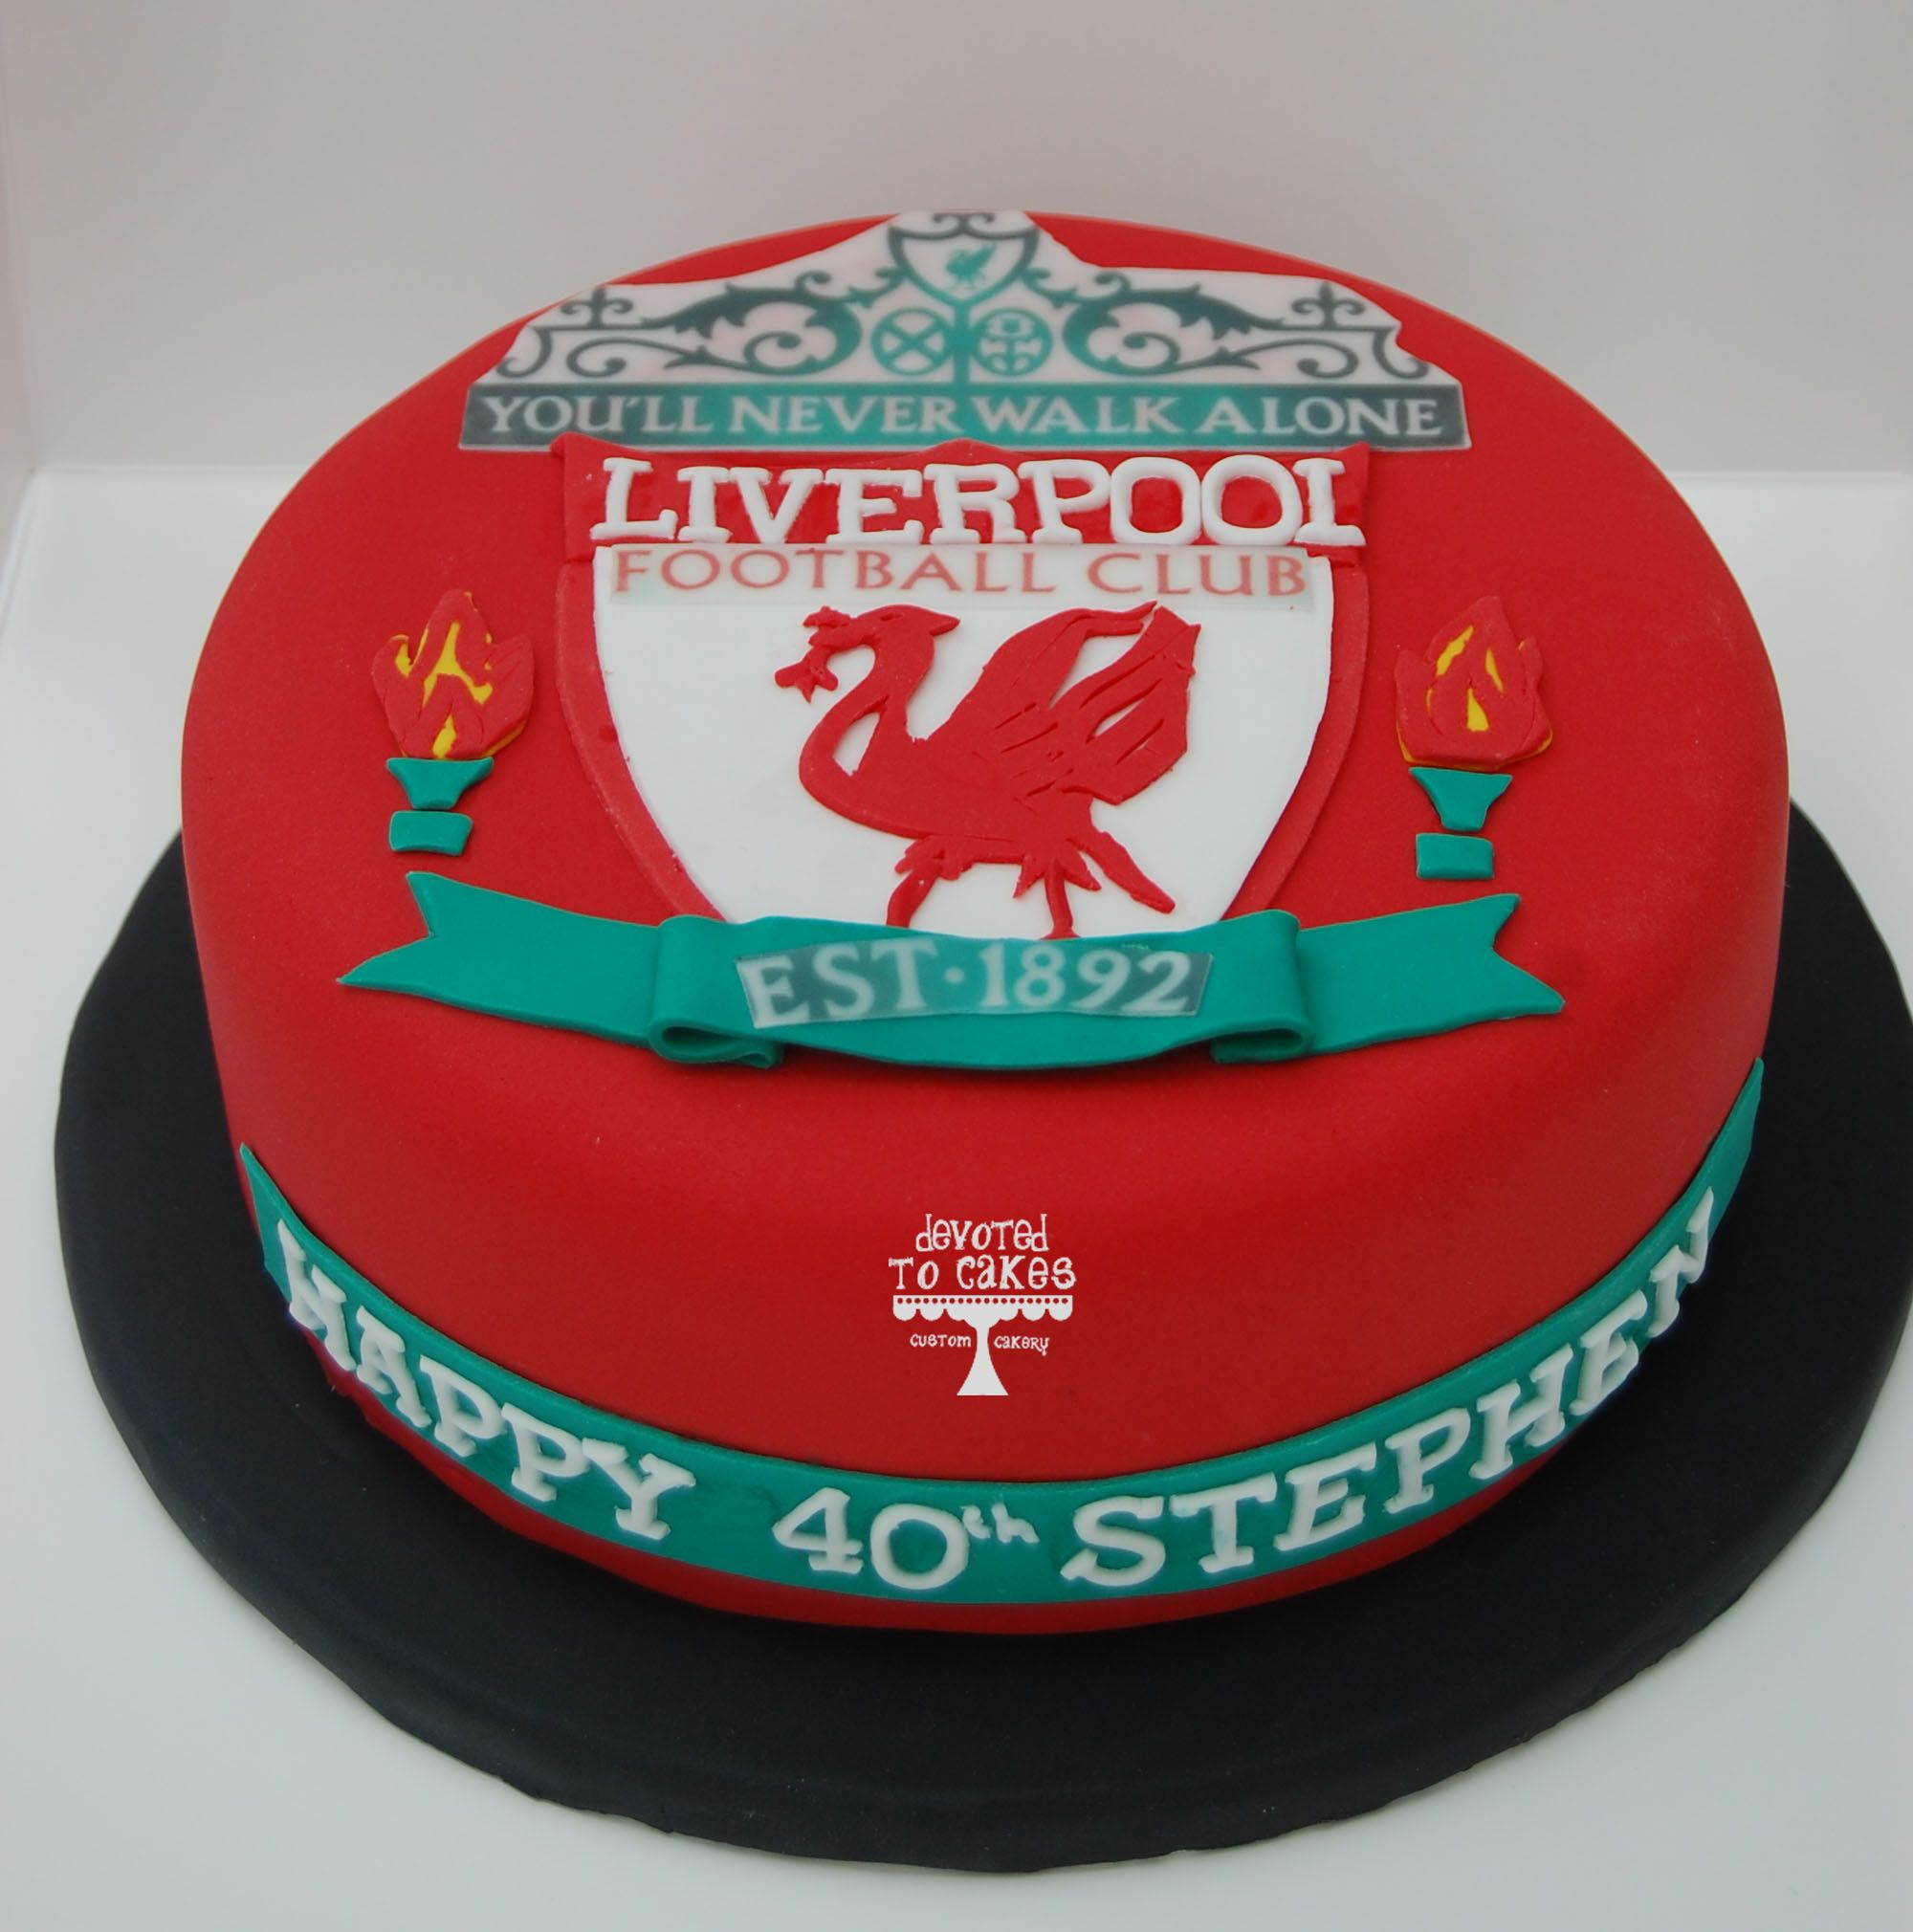 Liverpool Bedroom Accessories Liverpool Football Club Birthday Themed Cake Created By Villa